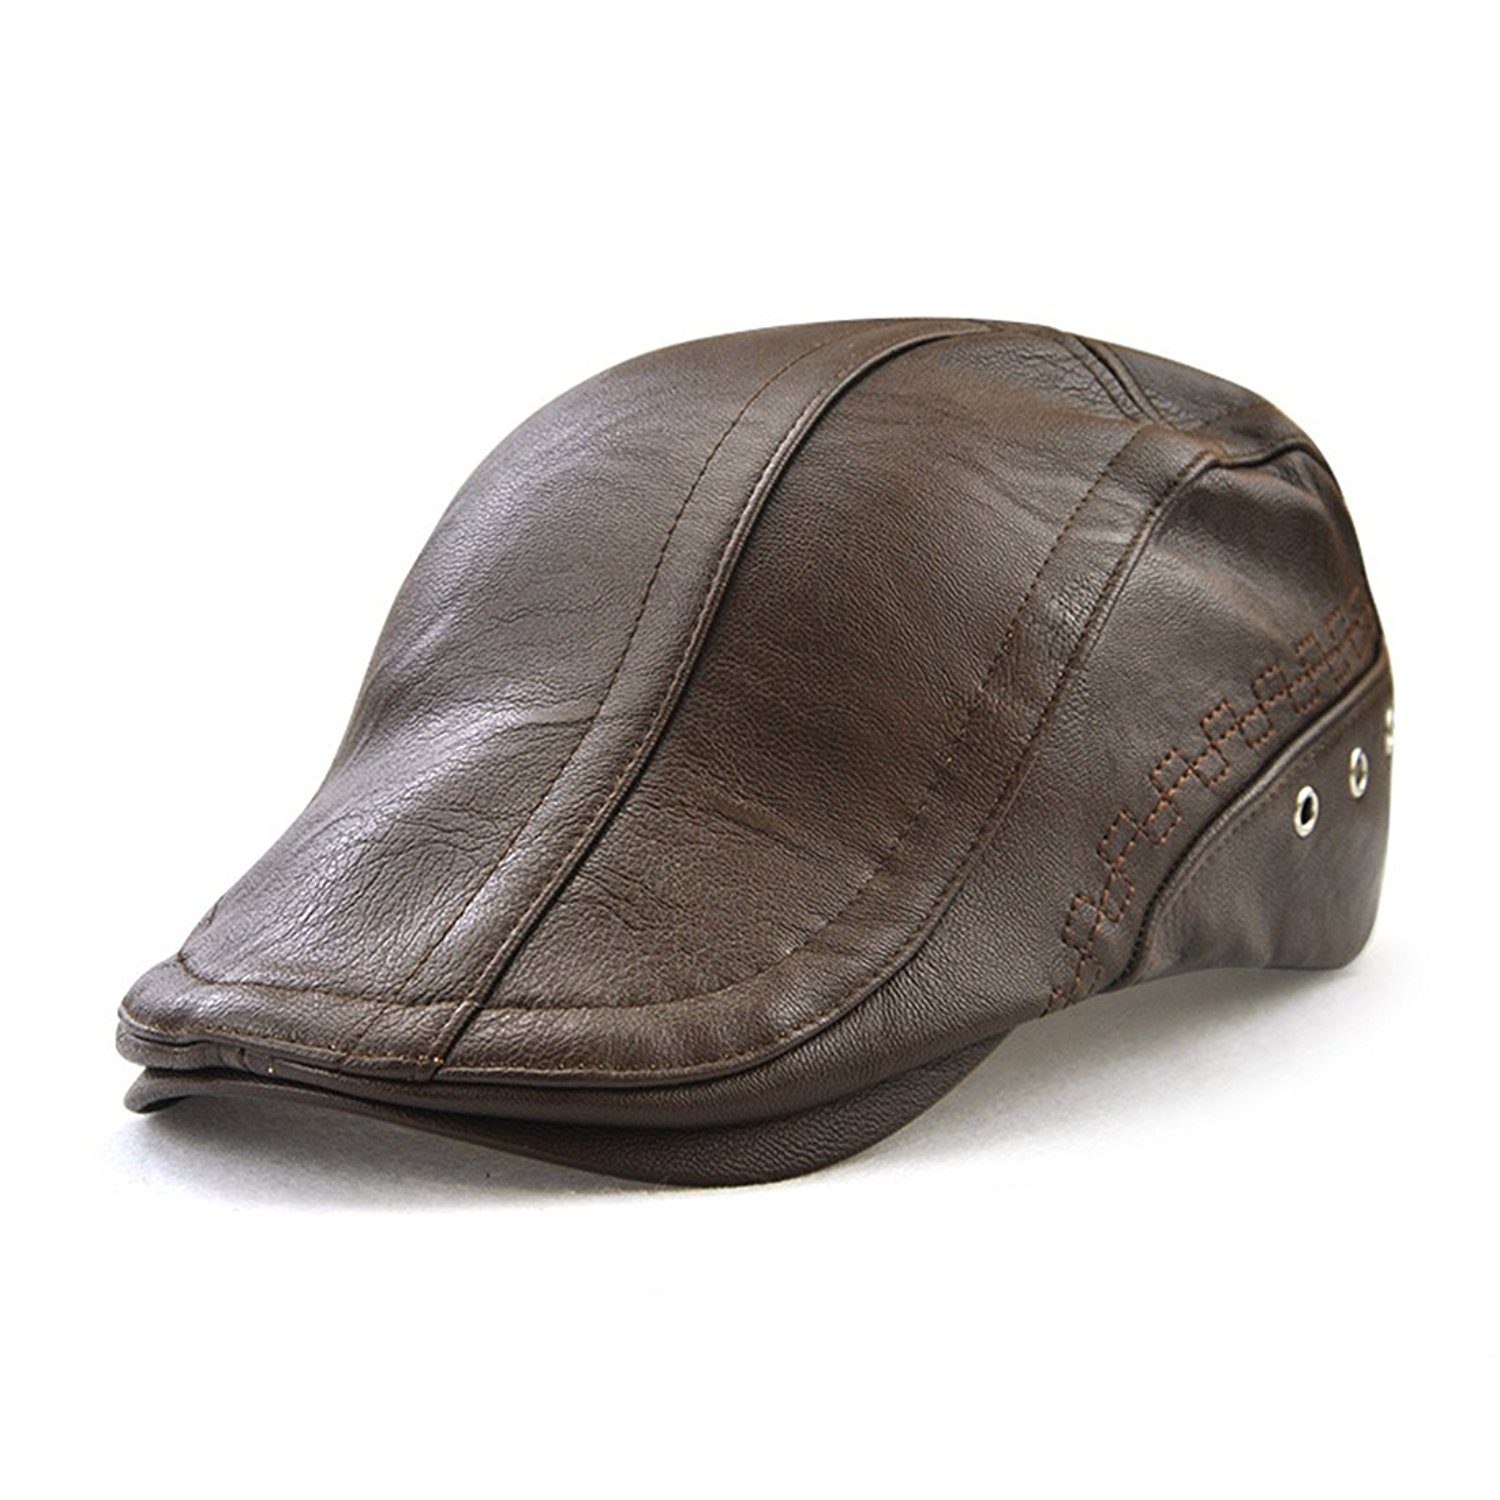 8ce26eb04de0f Get Quotations · PU Faux Leather Flat Cap Duckbill Hat Newsboy Irish Cabbie  Cap Perforated Bandage